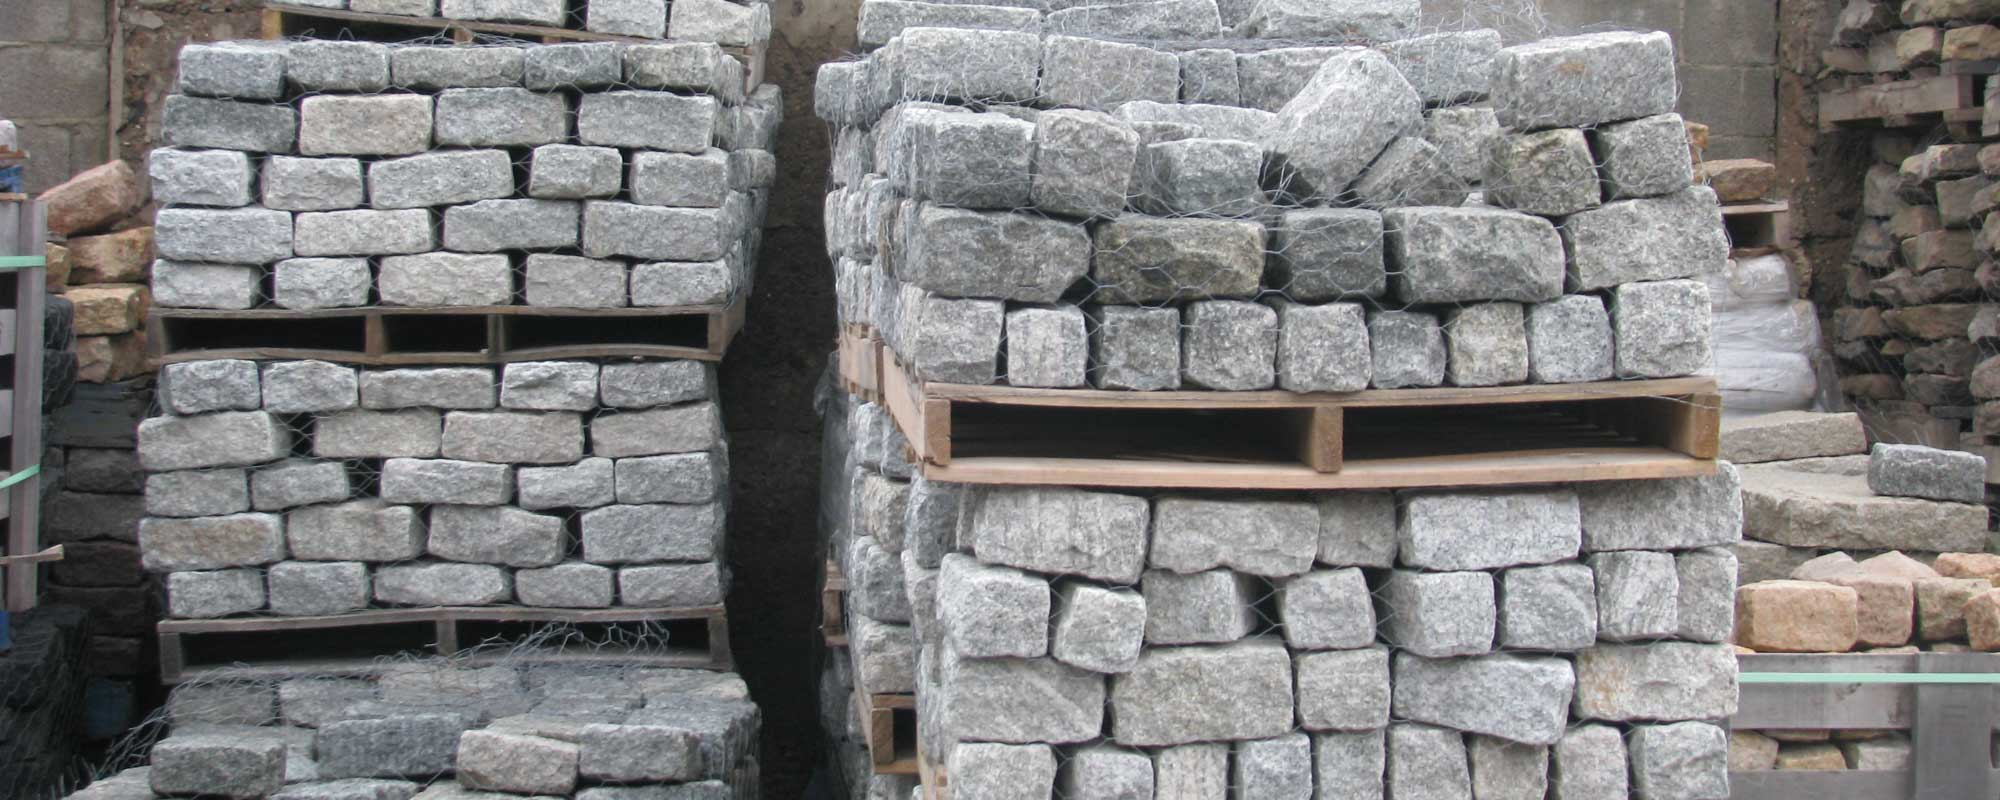 Pallets of Belgian Blocks